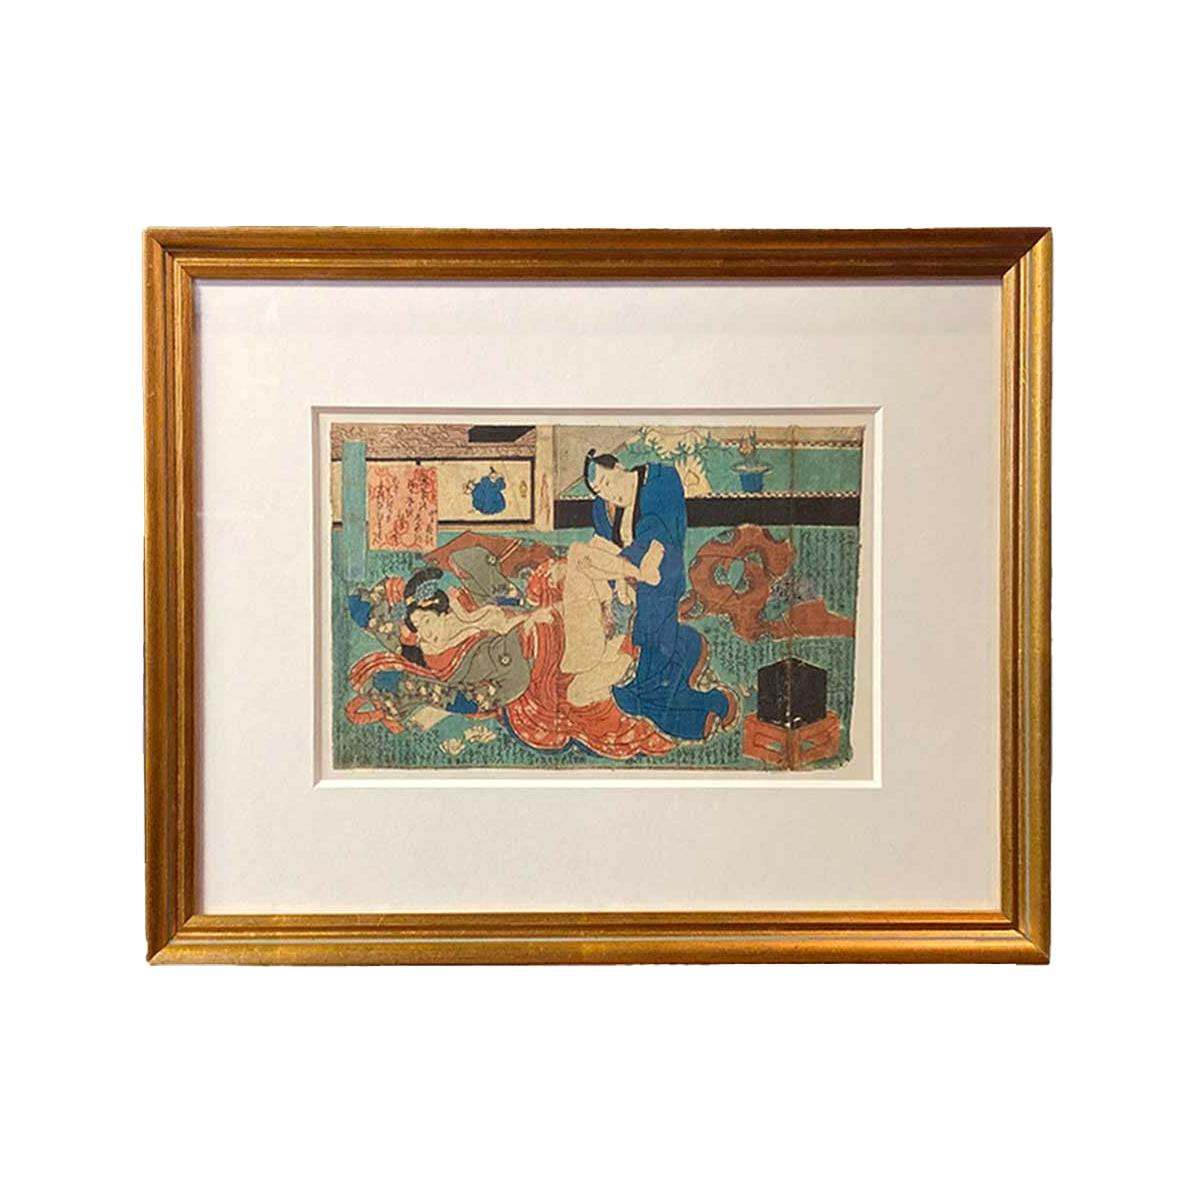 Antique Framed Japanese Shunga Woodblock Print of a Couple Making Love